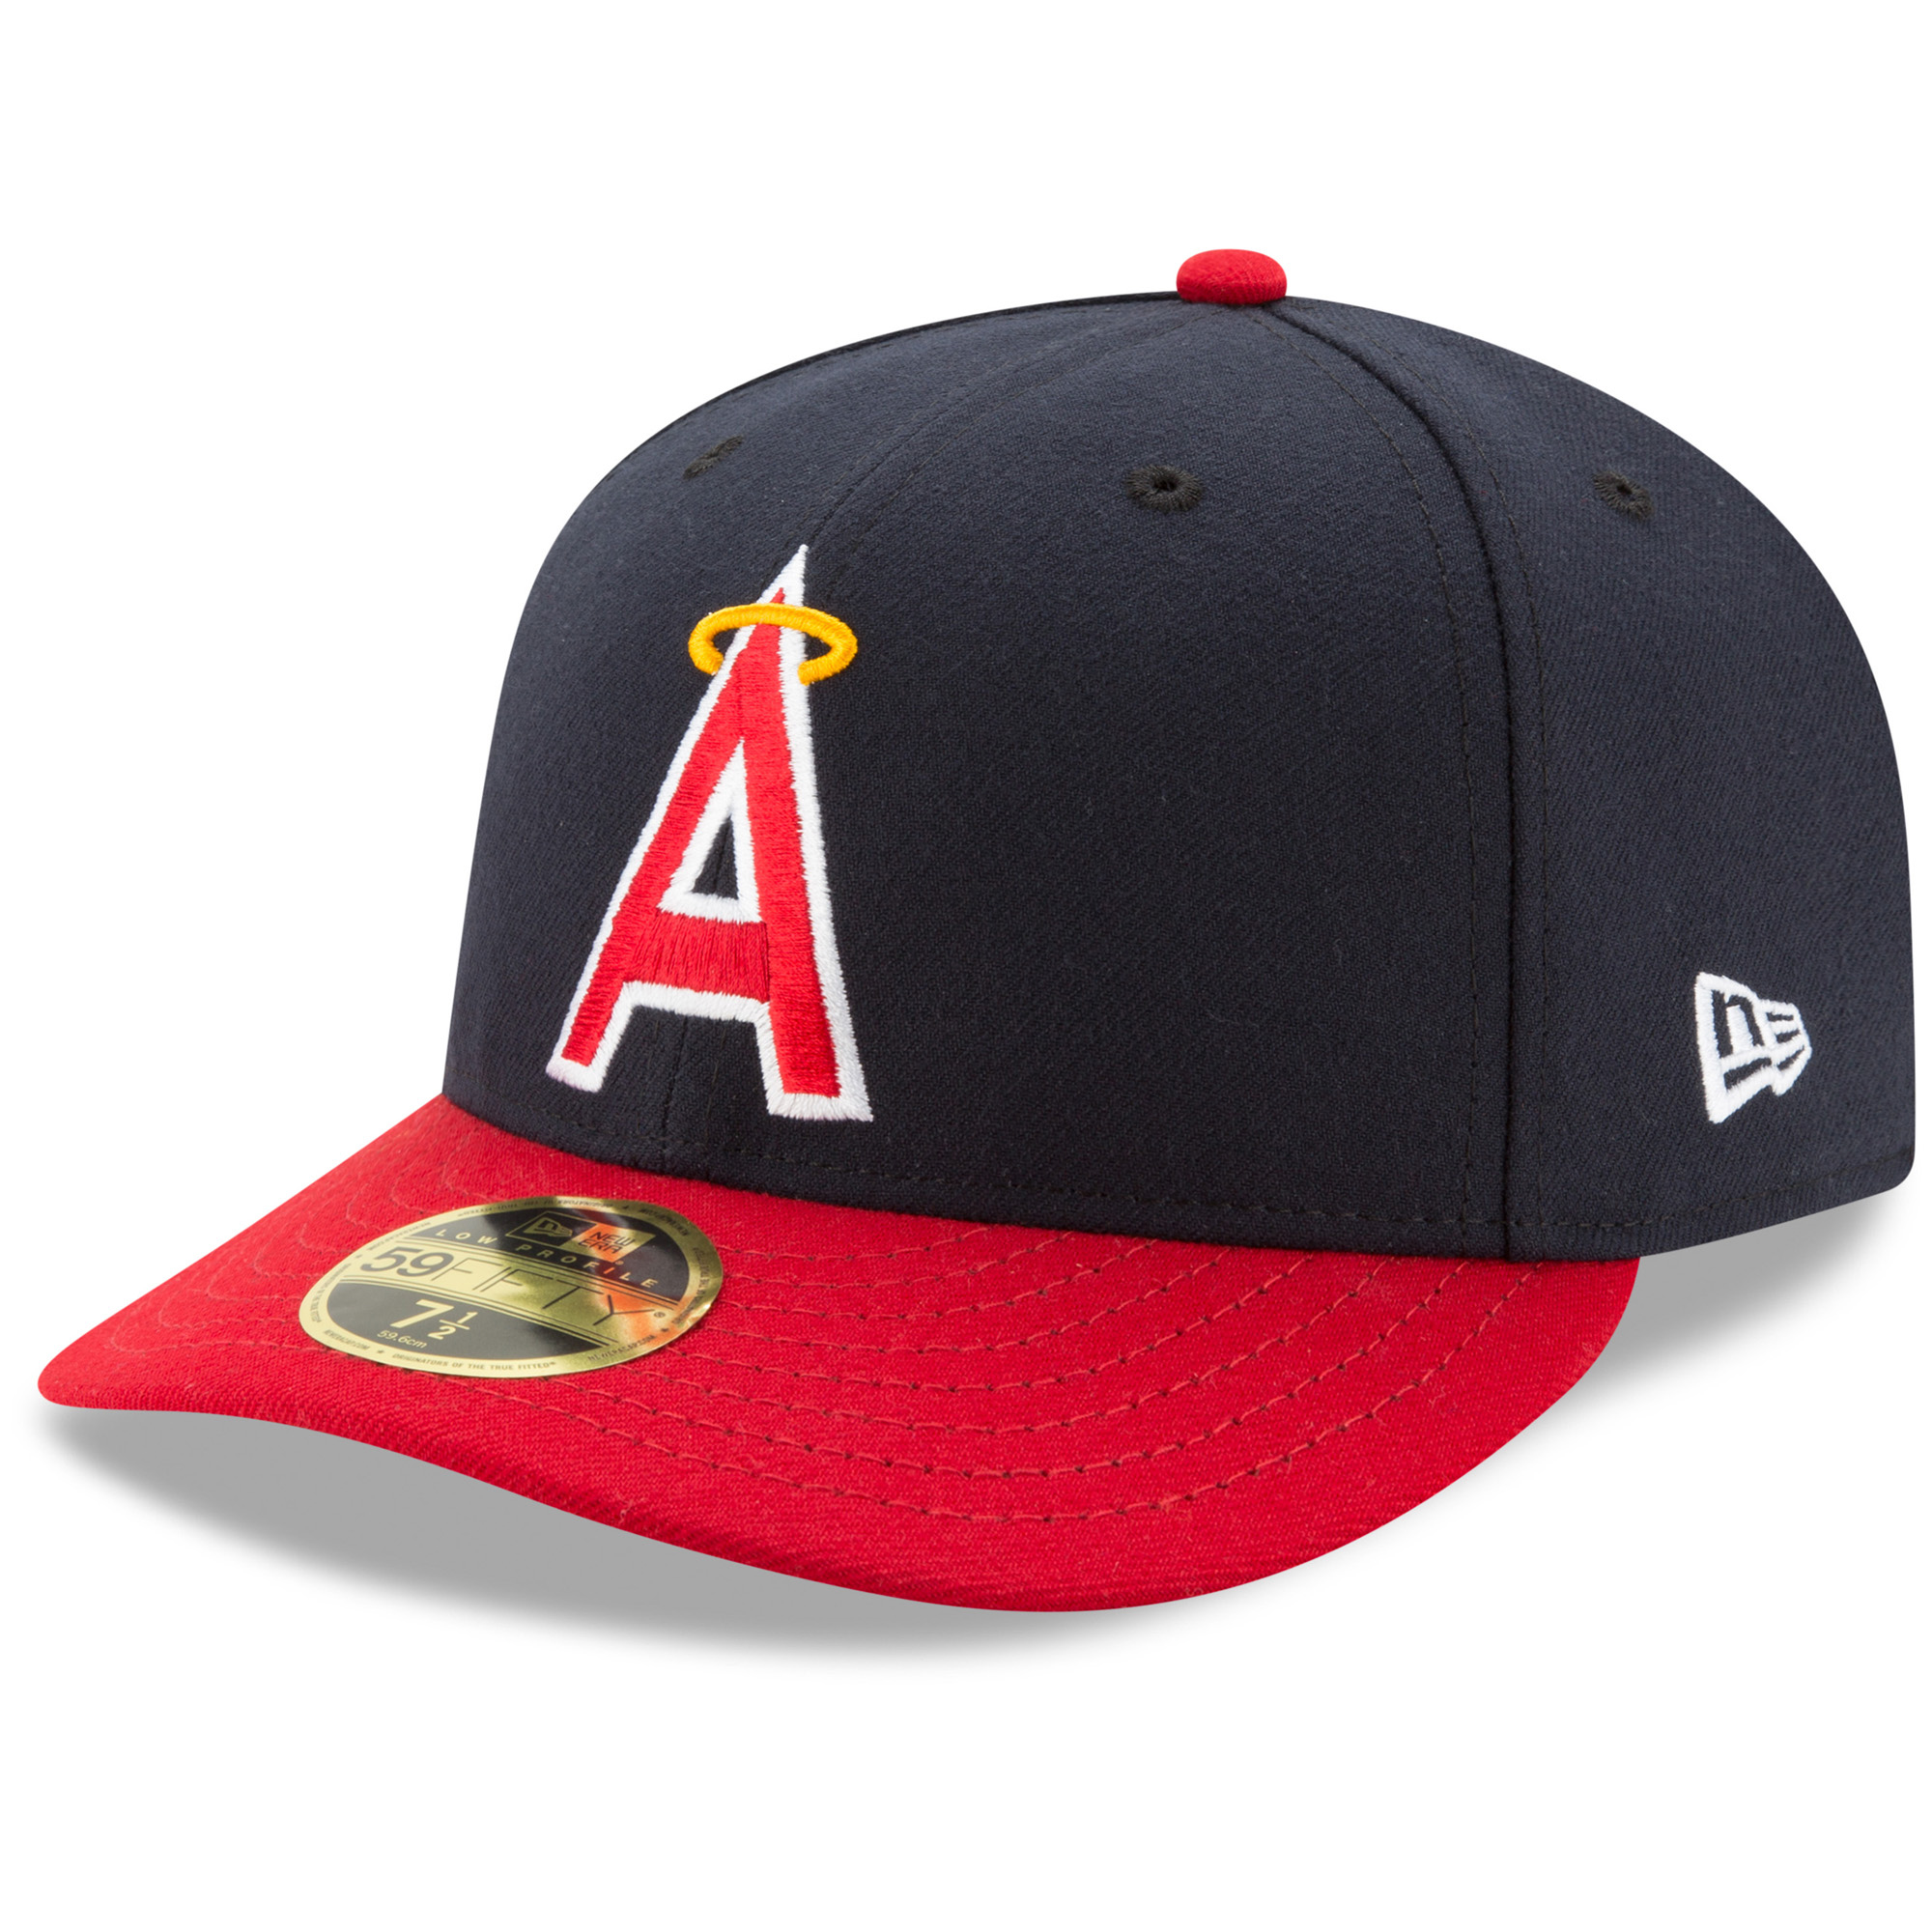 san francisco 155bd 0eb37 ... cheapest los angeles angels new era turn back the clock low profile  59fifty fitted hat navy